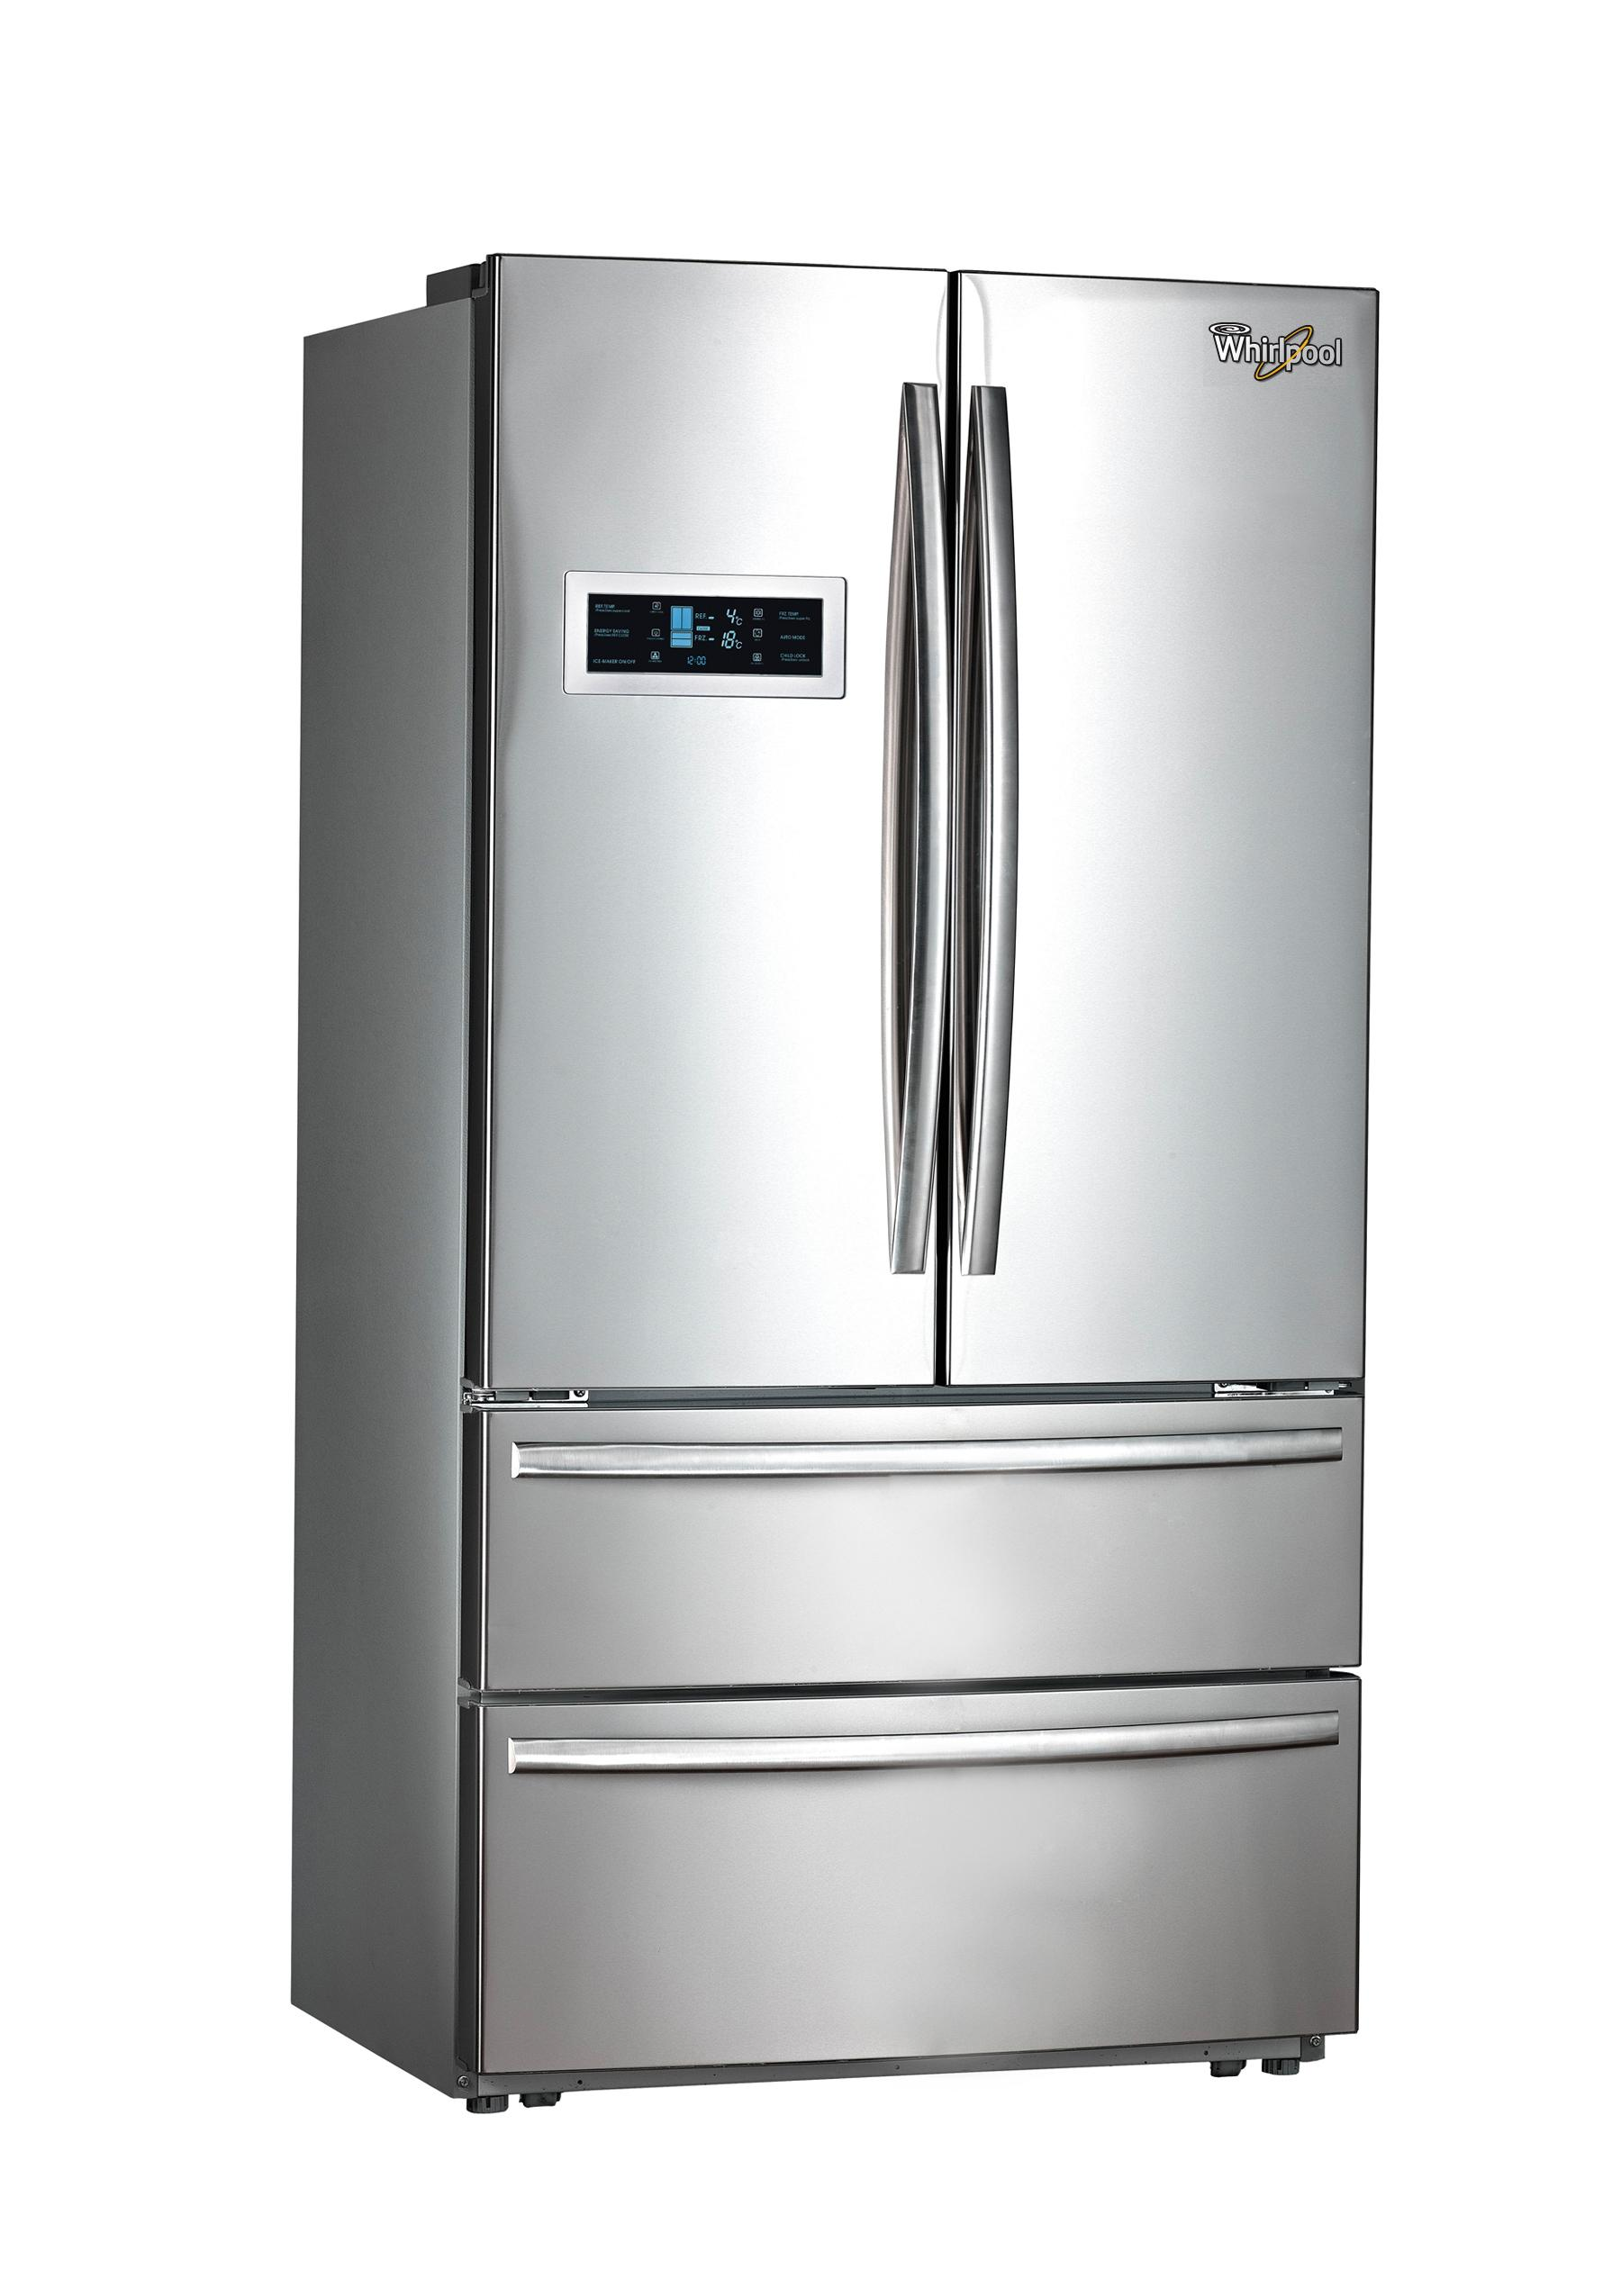 whirlpool side by side door refrigerator fdbm reviews. Black Bedroom Furniture Sets. Home Design Ideas